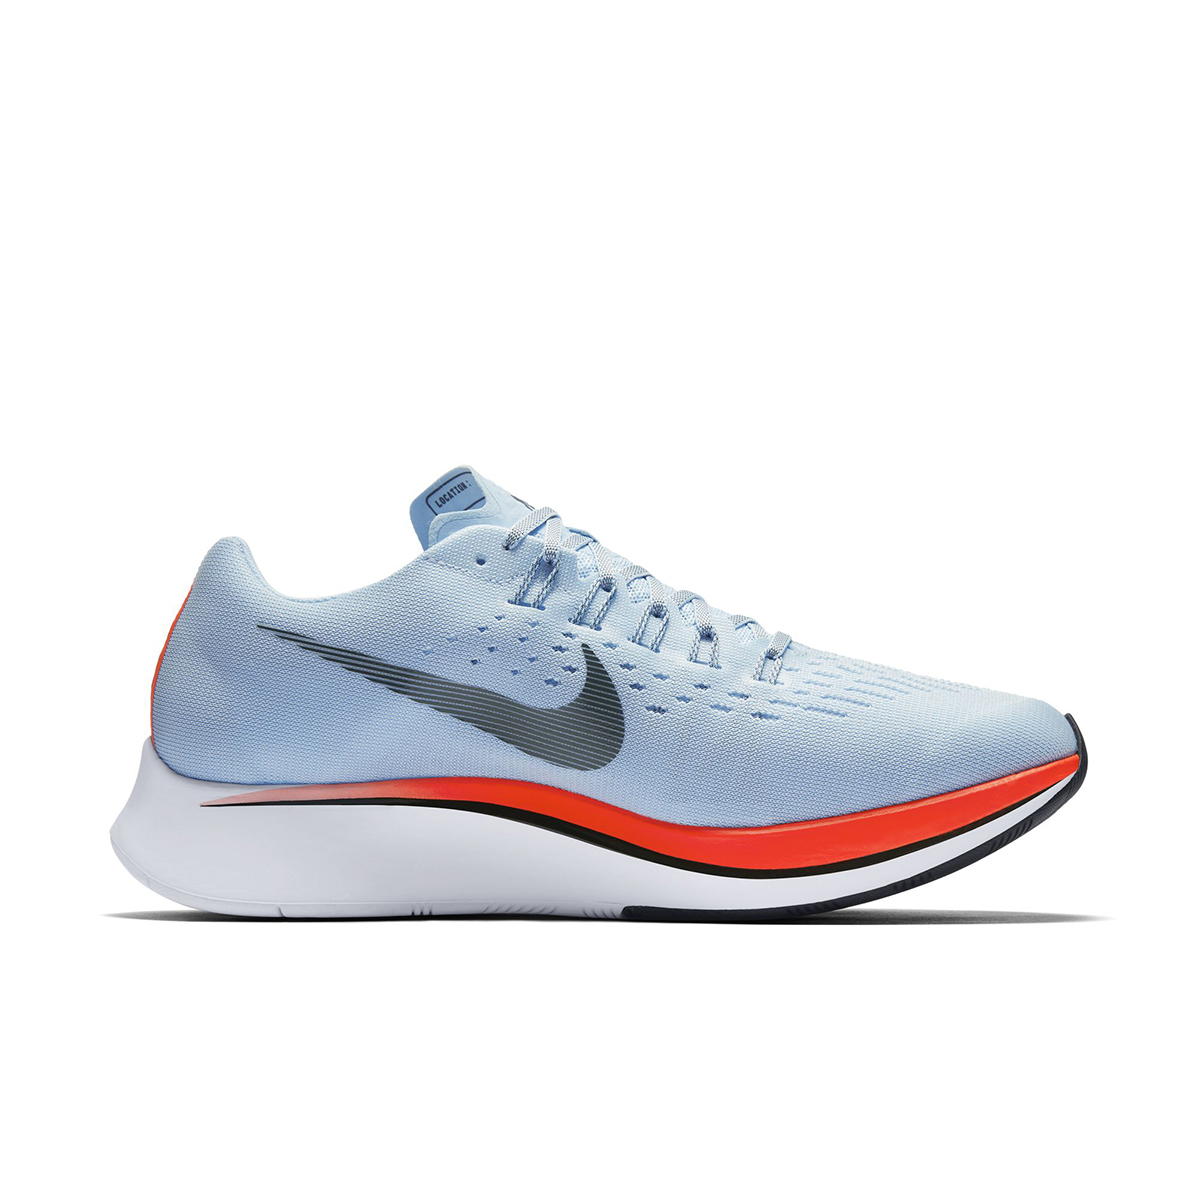 Motion Control Insoles Running Shoes